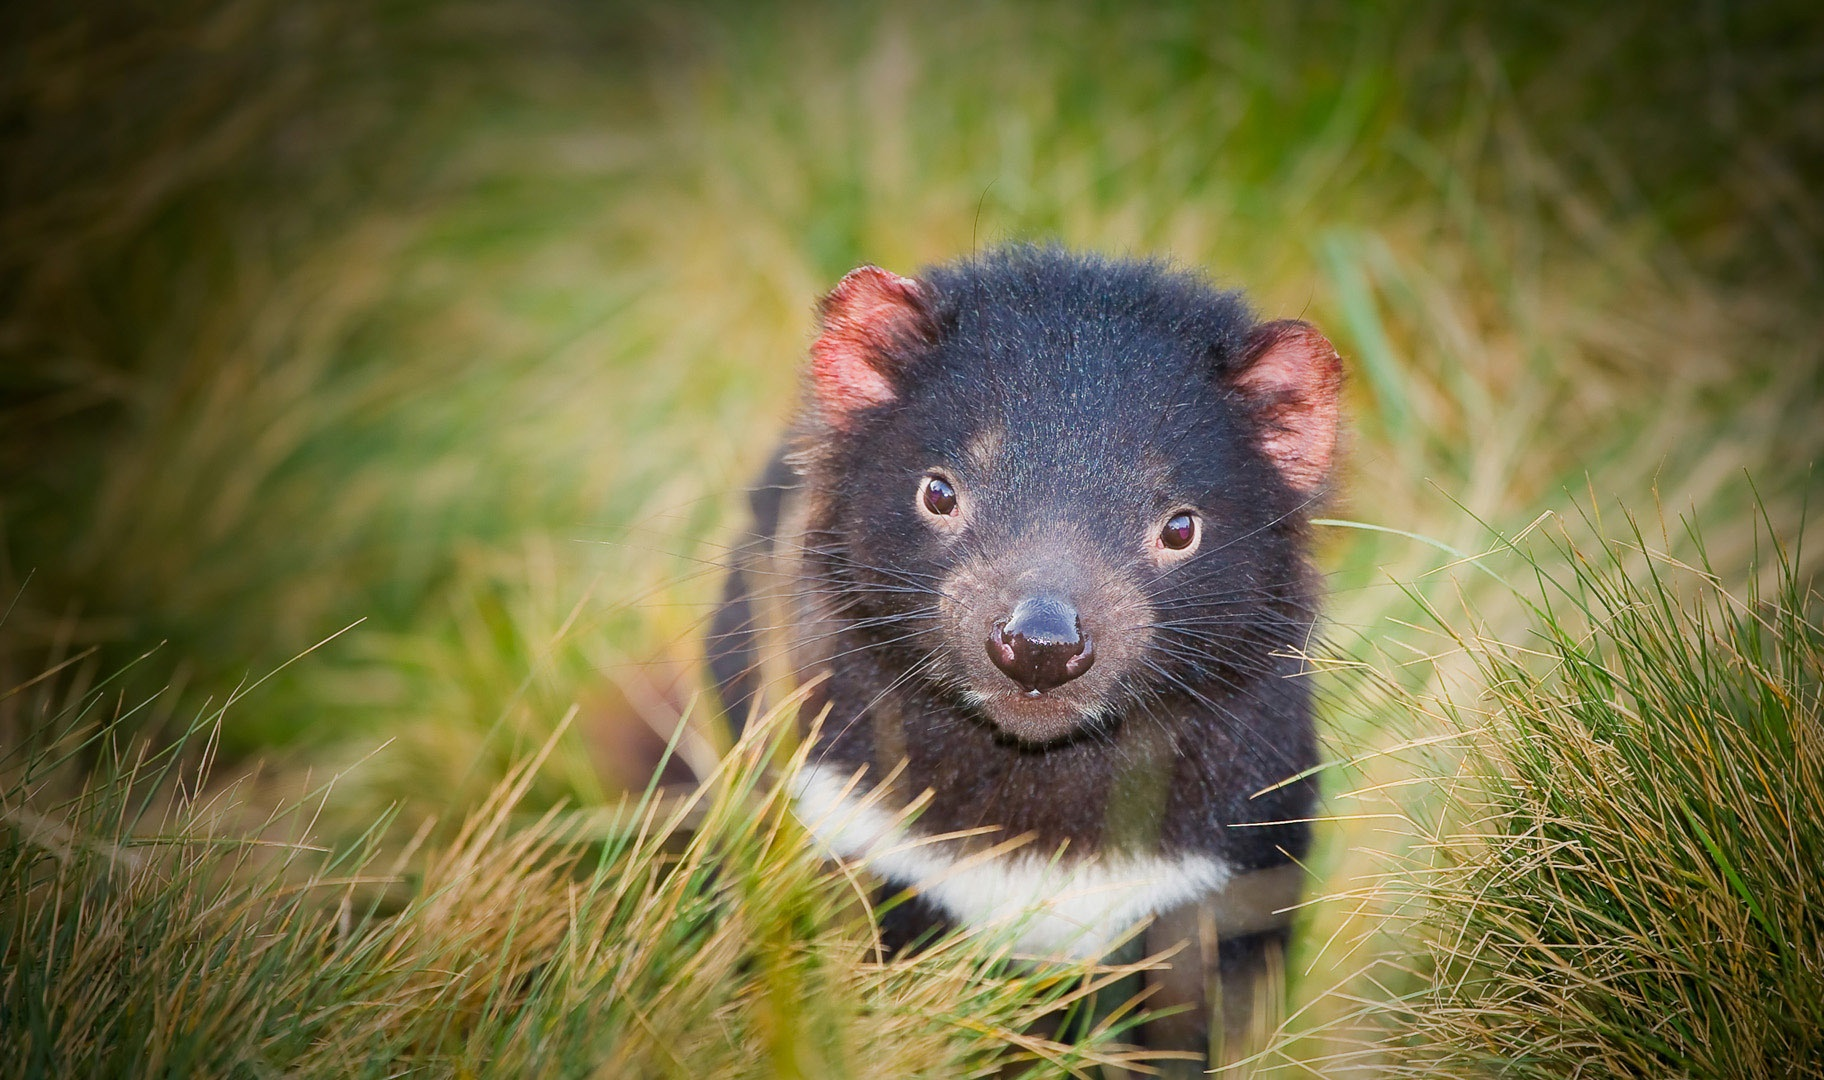 Tasmanian Devil Wallpapers Archives - HDWallSource.com